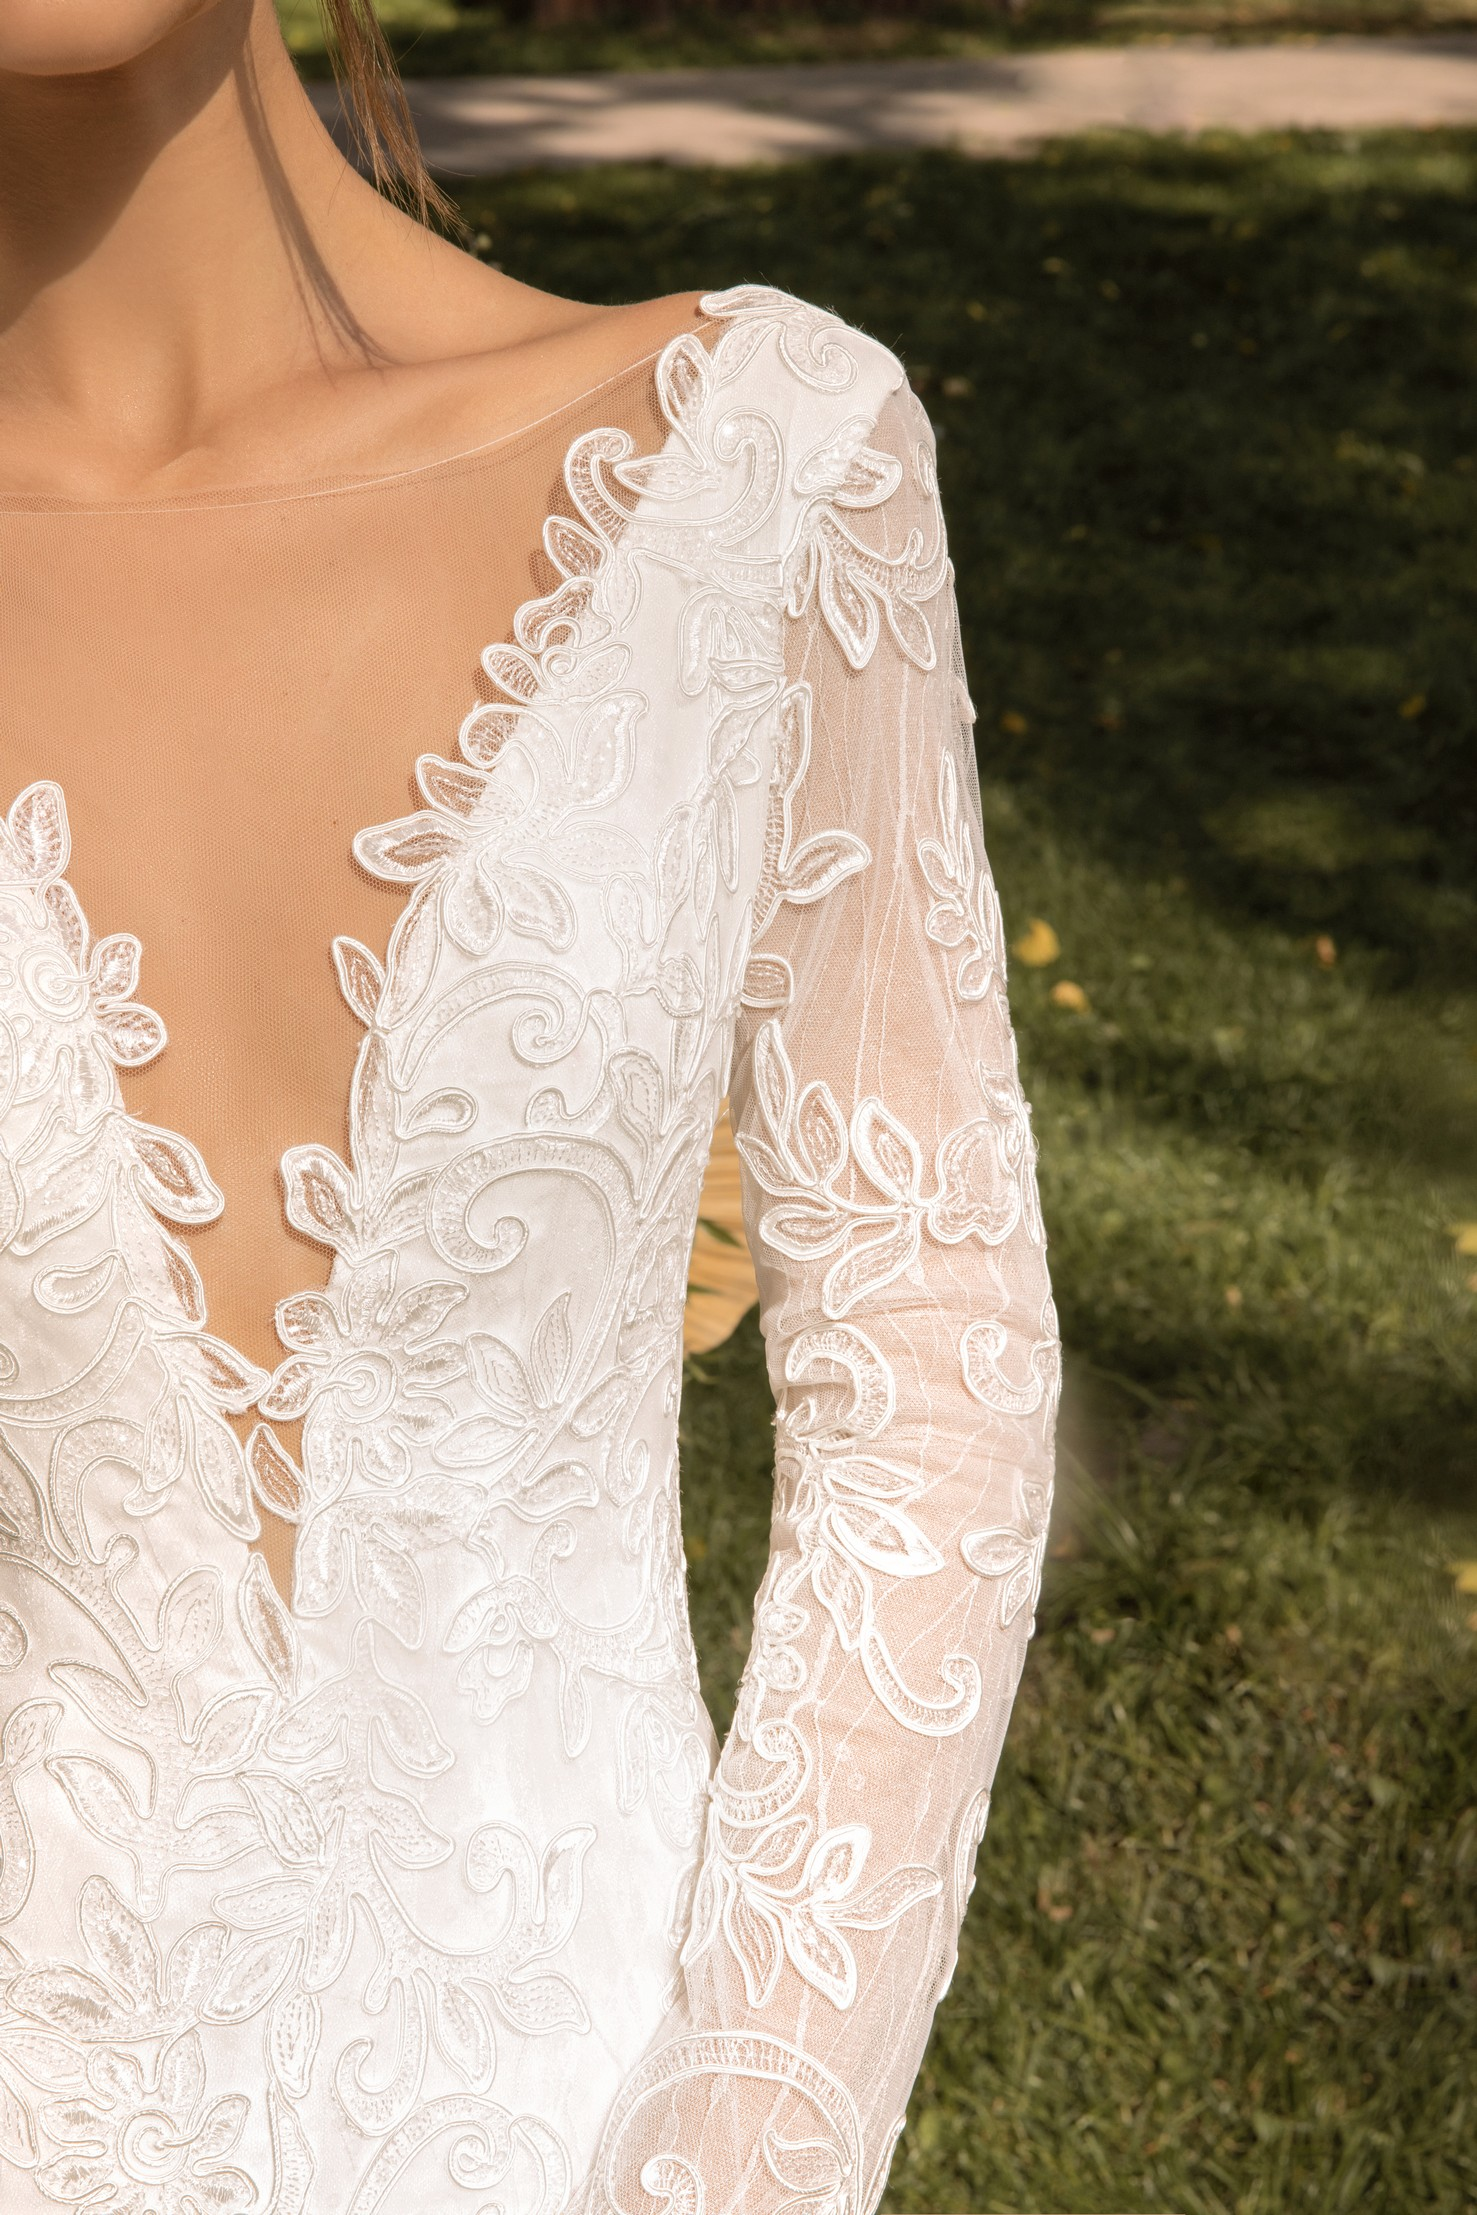 Lace A-line Wedding Dress With Corset Bodice, Ruched Long Sleeves And Bow Neck_2